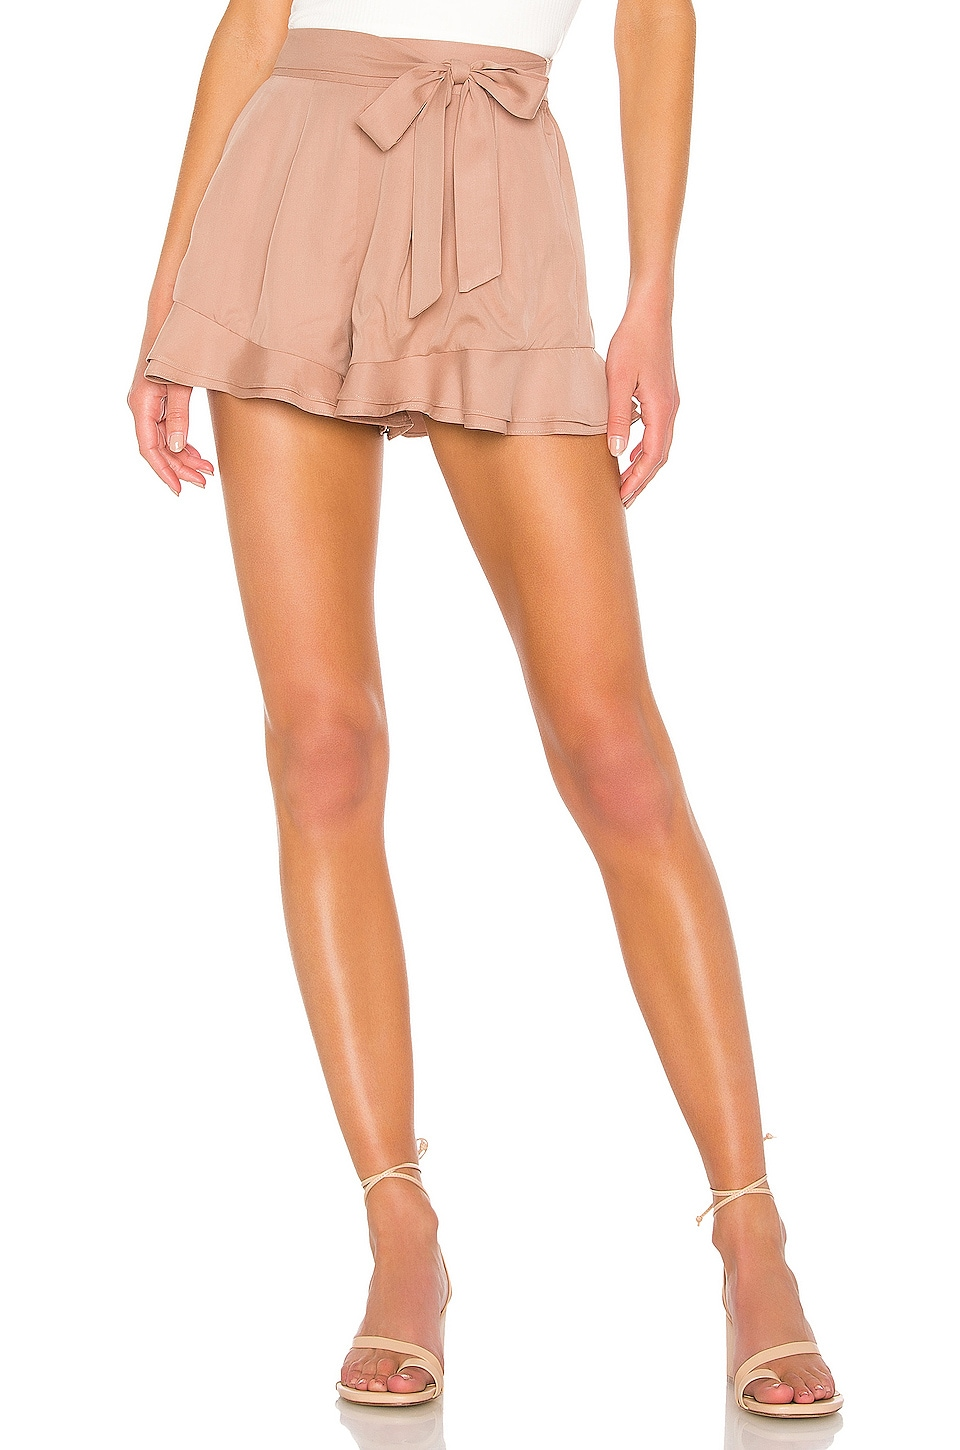 Tularosa Into The Sun Shorts in Nude